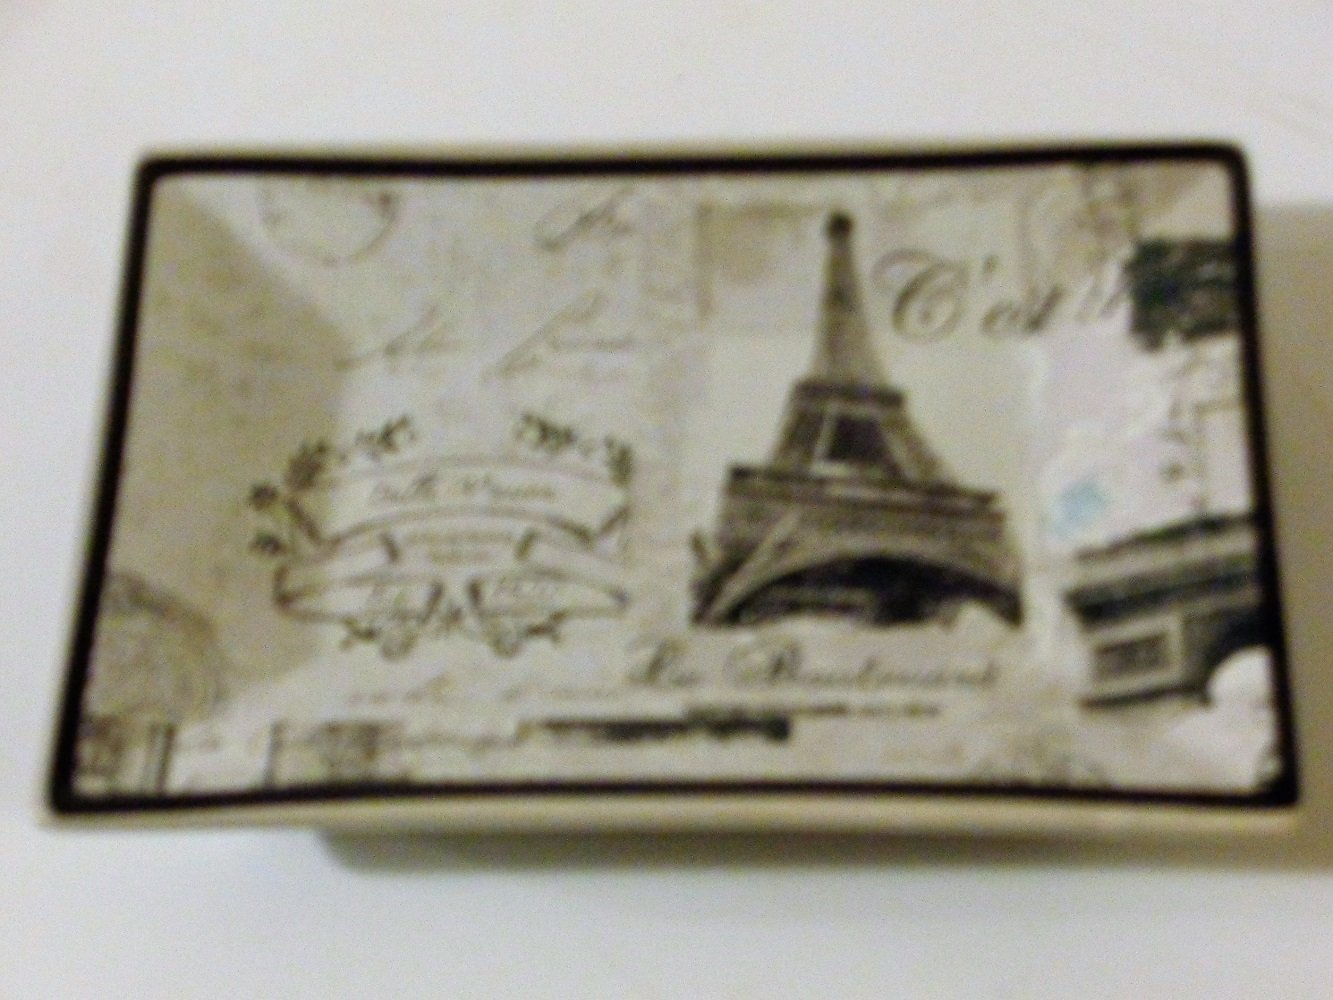 Paris Stamps Eiffel Tower Soap Dish French Bath Decor